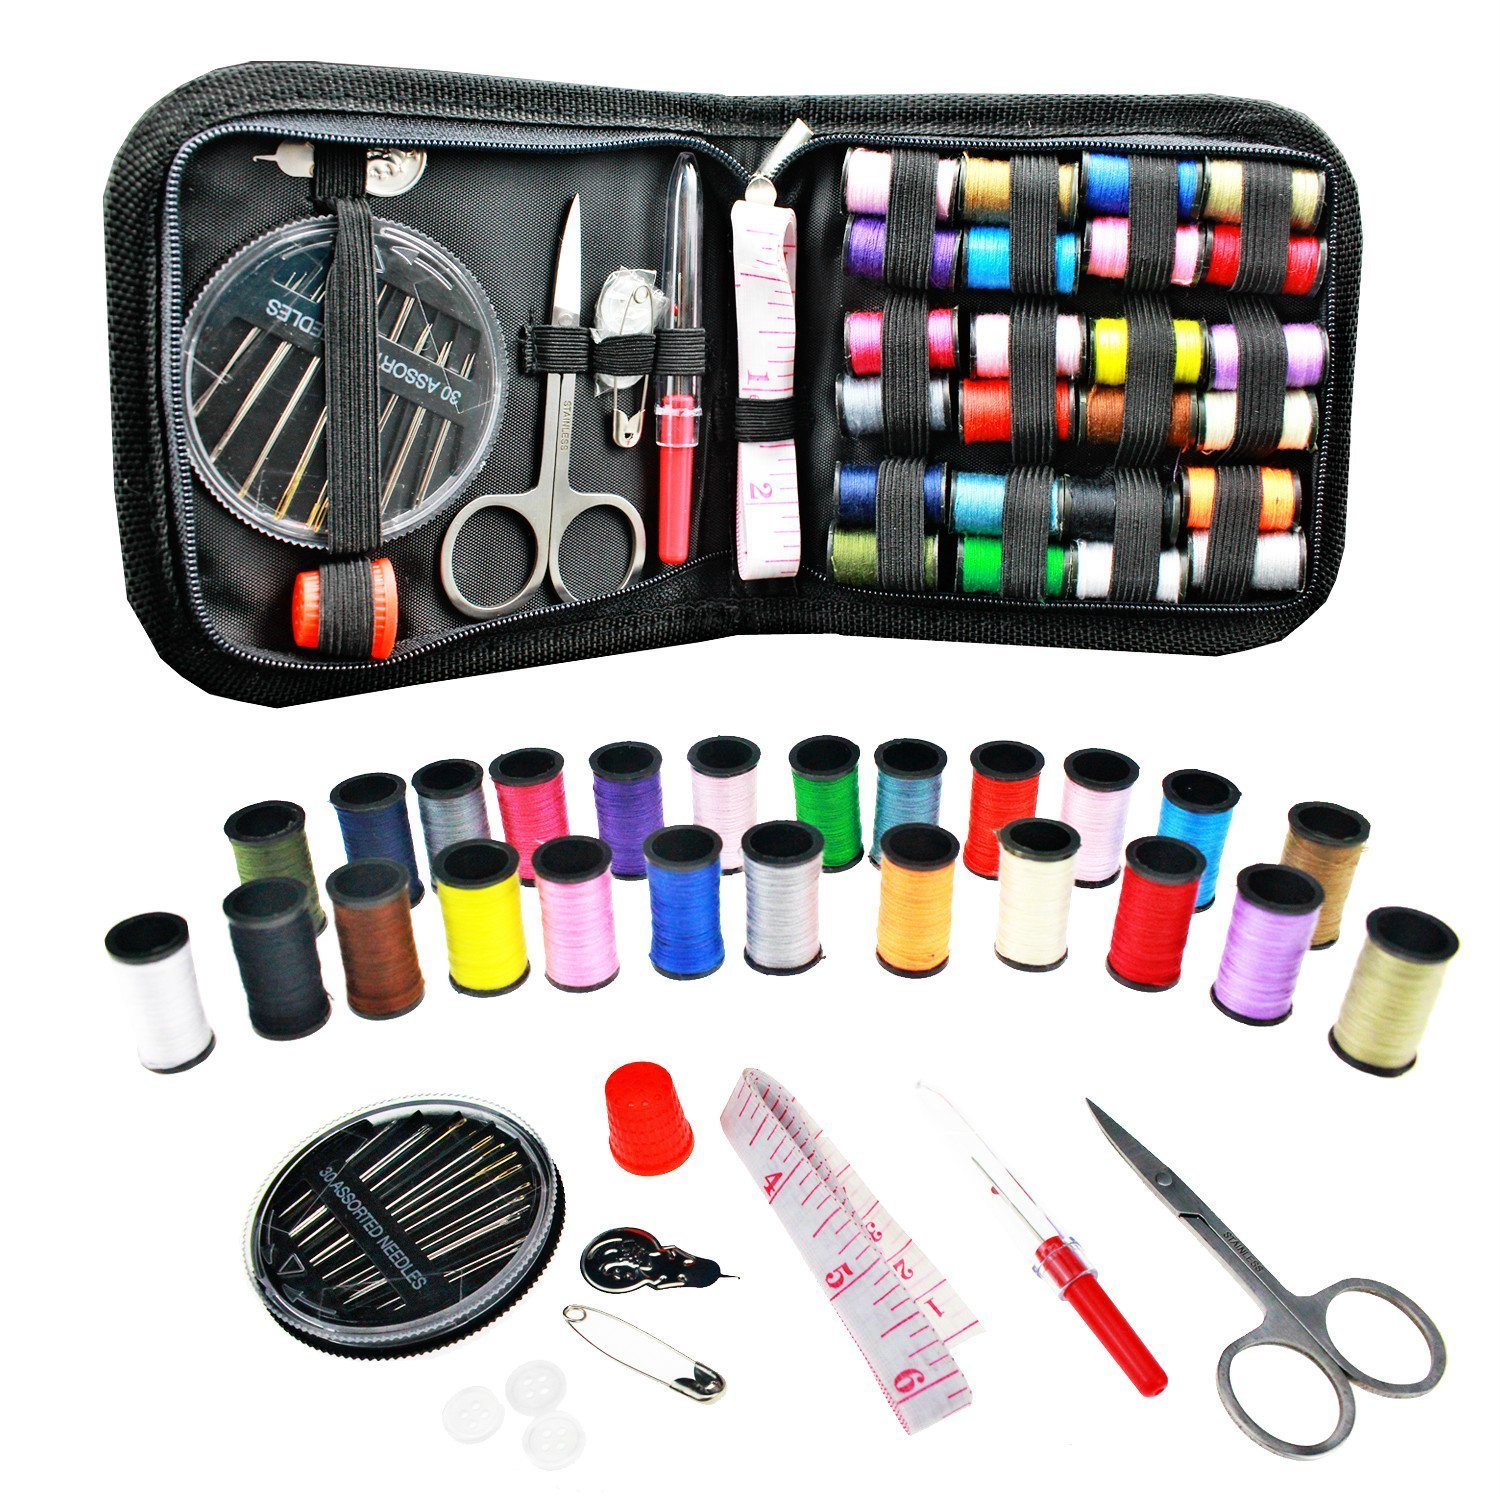 Gold Meier Sewing Kit with Over 90 Premium Sewing Accessories, 24 Color Spools of Thread Sew kits Supplies for Beginner, Traveler, Emergency with Zipper Bag 4336936305